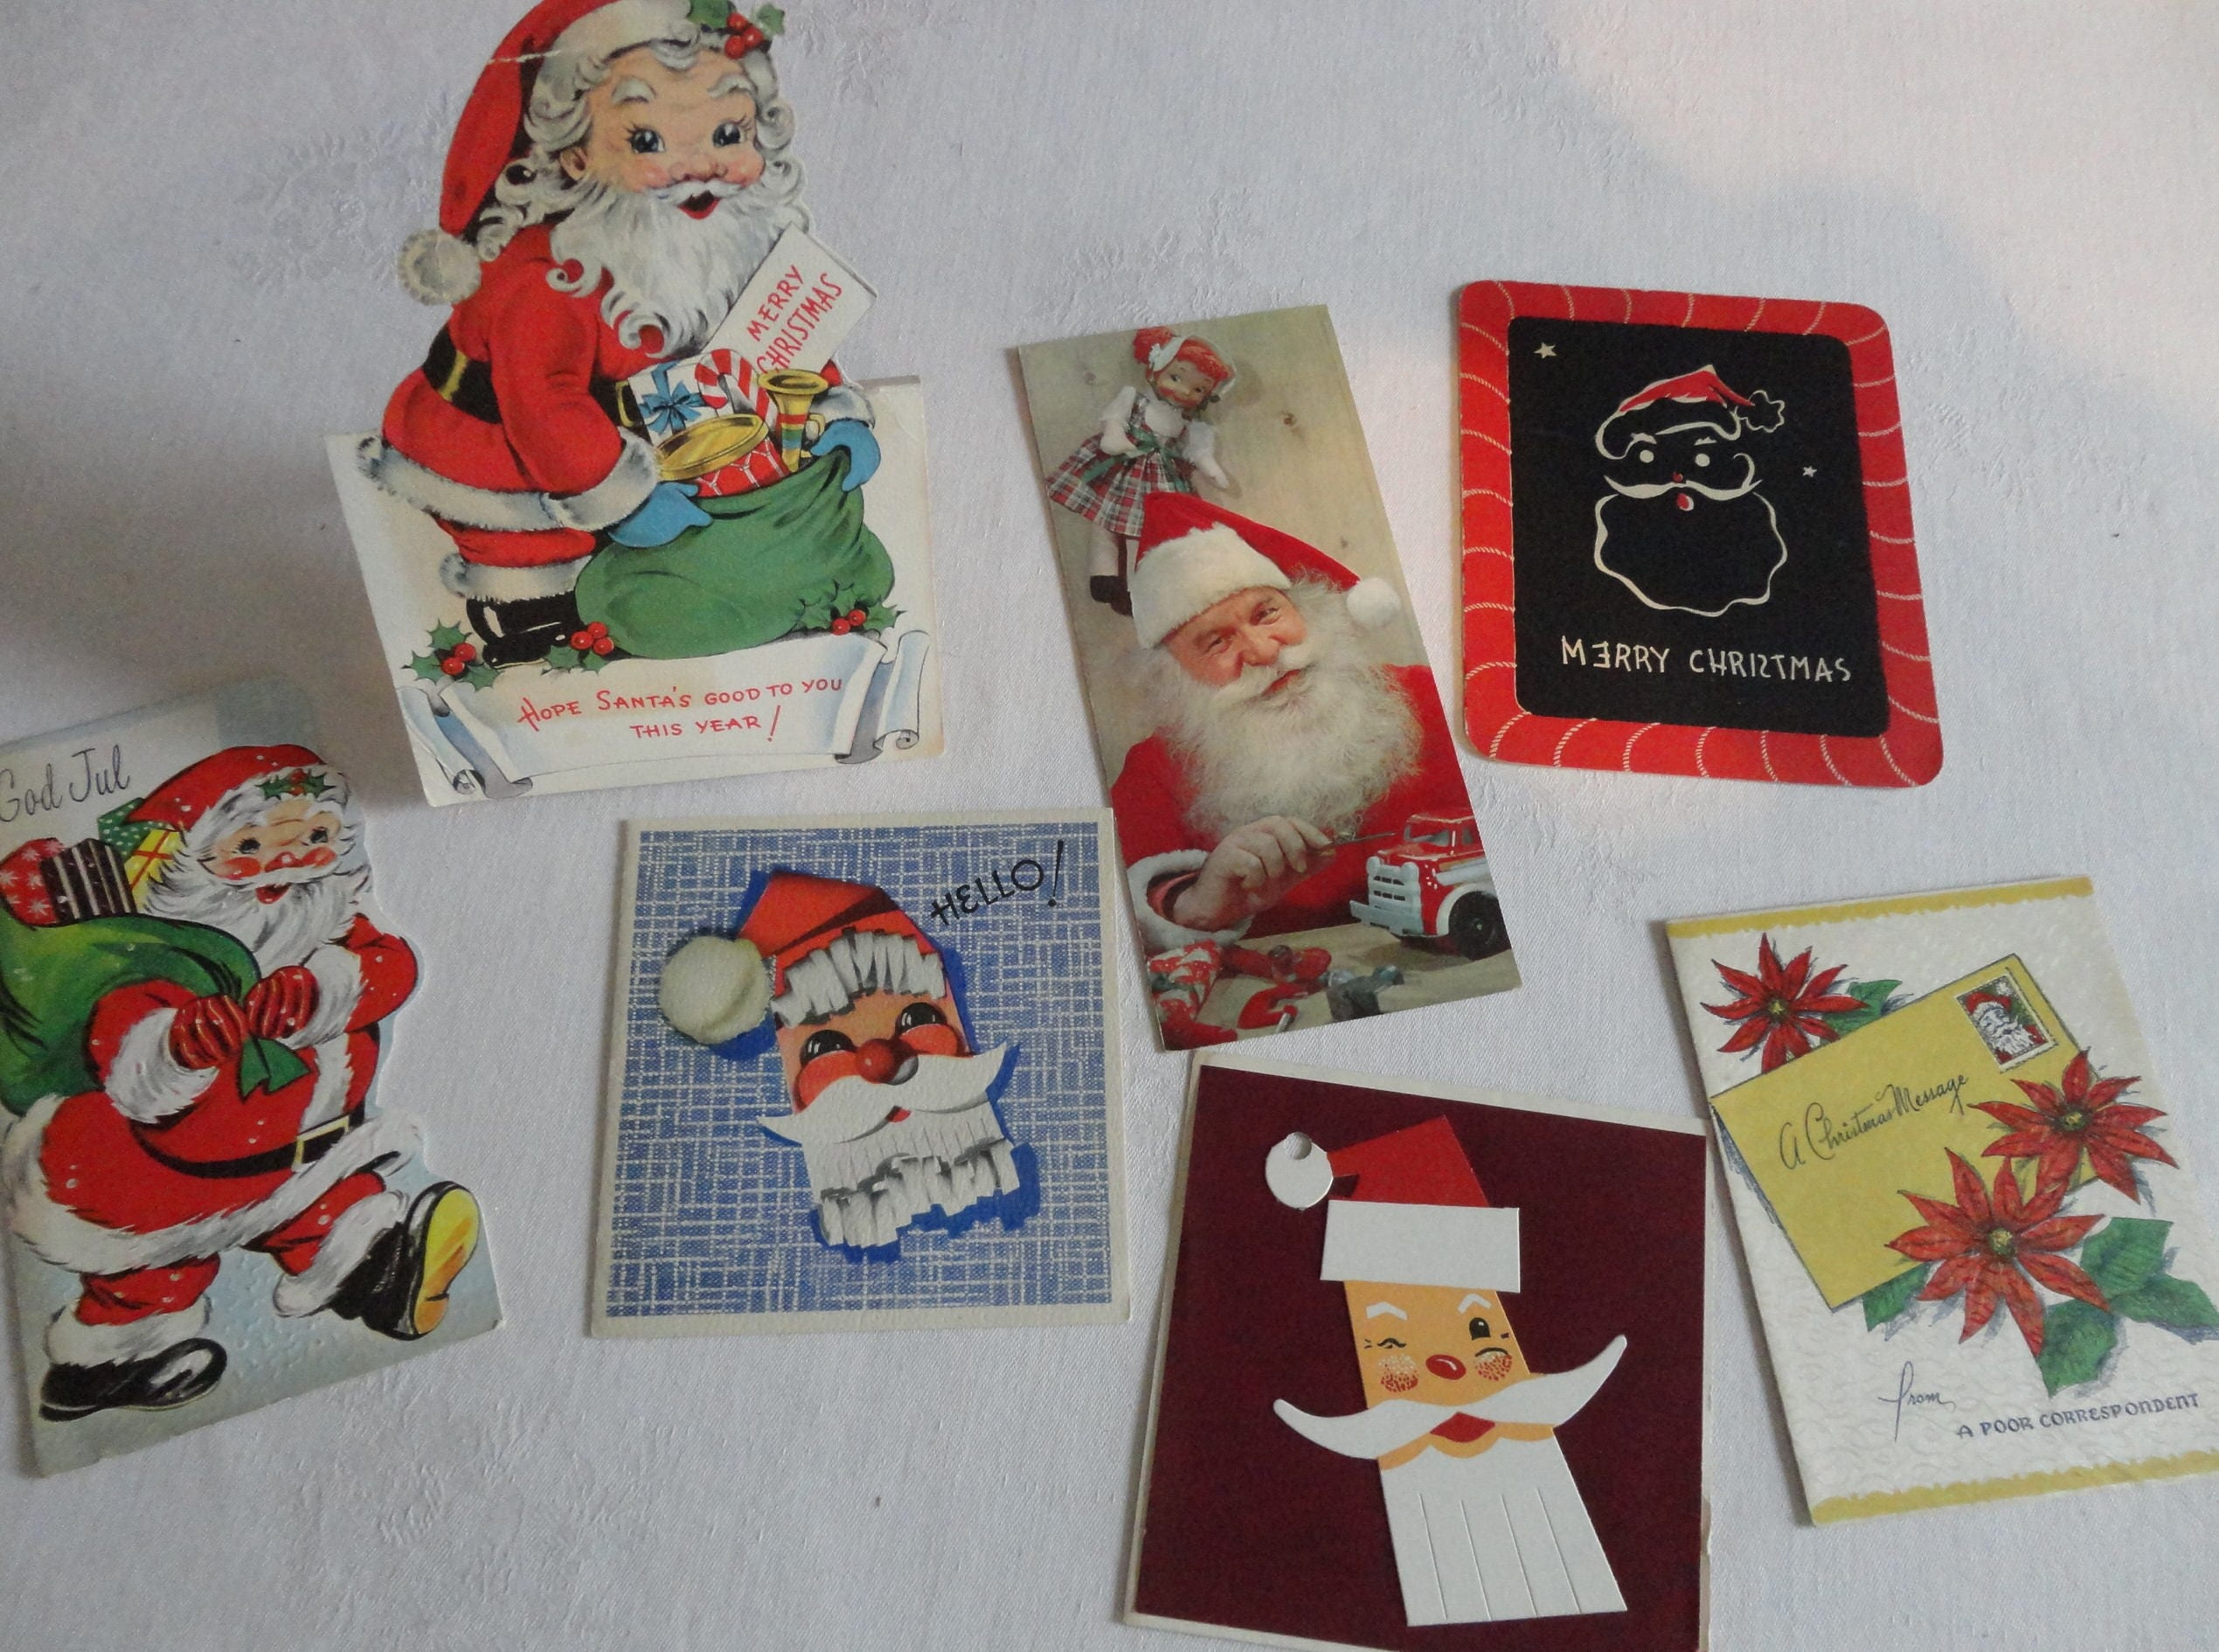 Not your typical santa in vintage christmas lot no 1188 one is an not your typical santa in vintage christmas lot no 1188 one is an ornament one stand up lot of 7 god jul is danish for merry christmas m4hsunfo